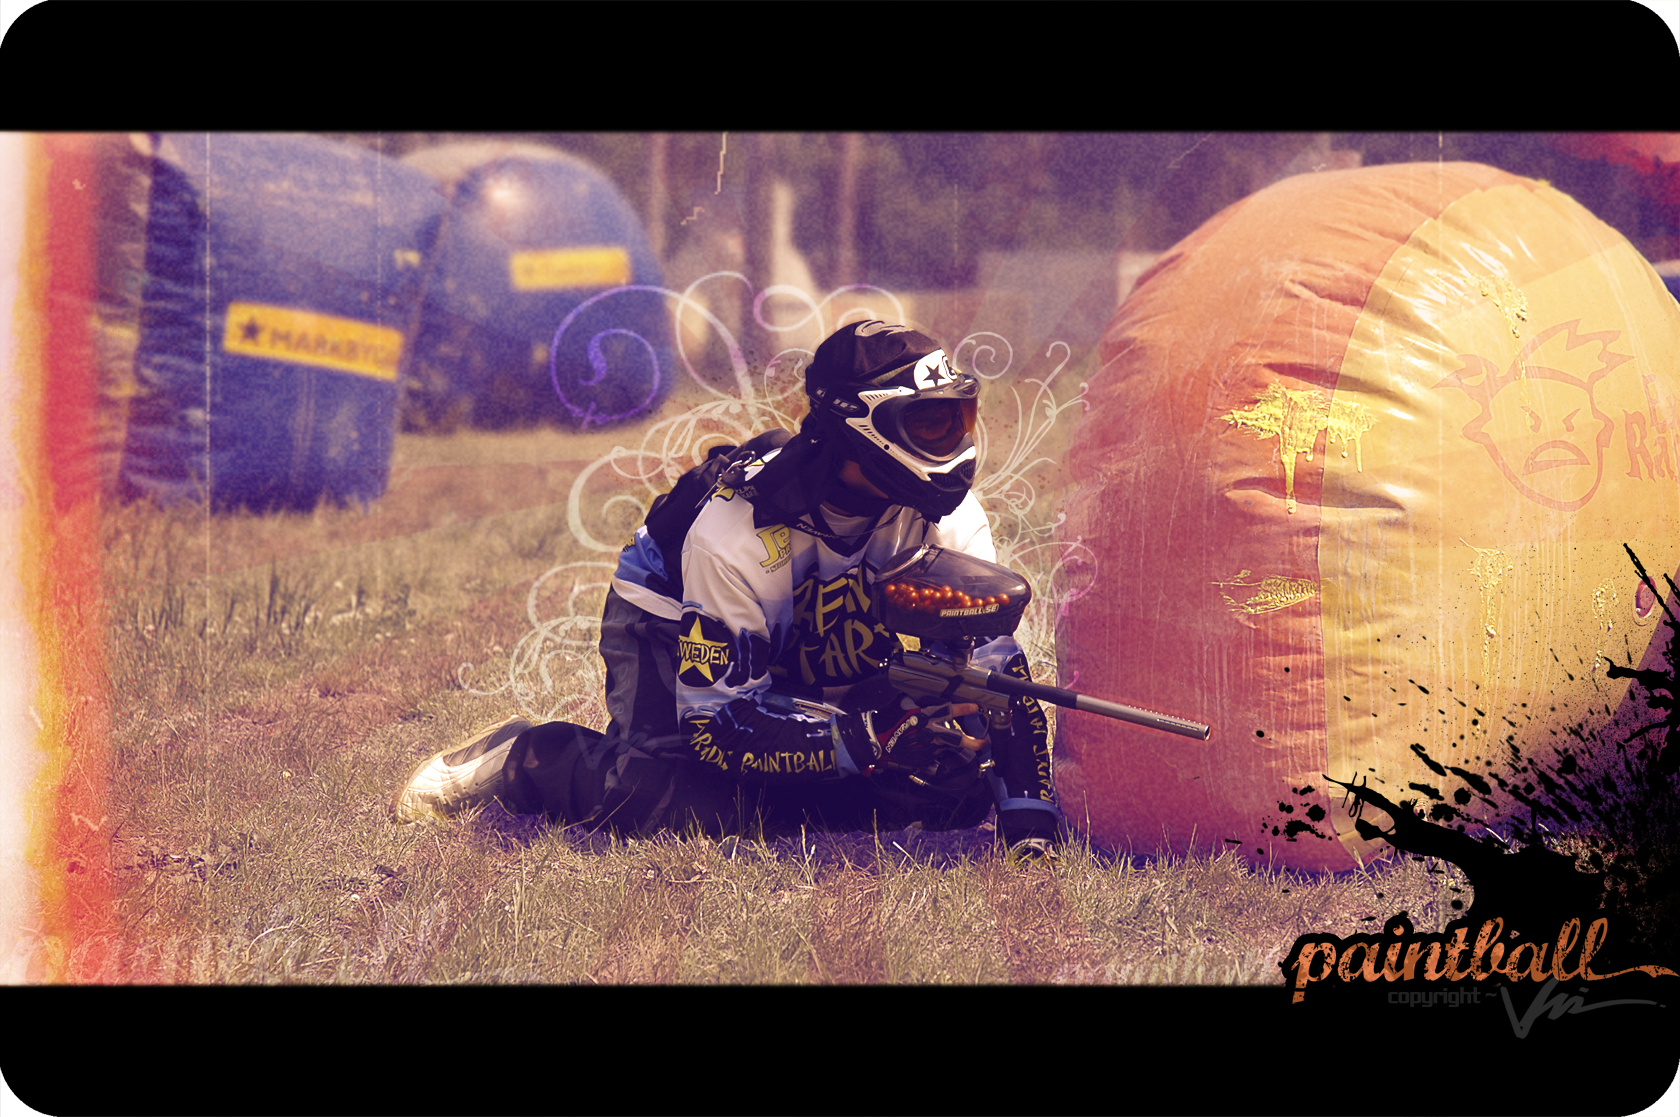 Paintball wallpaper 1 by Keeyou Paintball wallpaper 1 by Keeyou